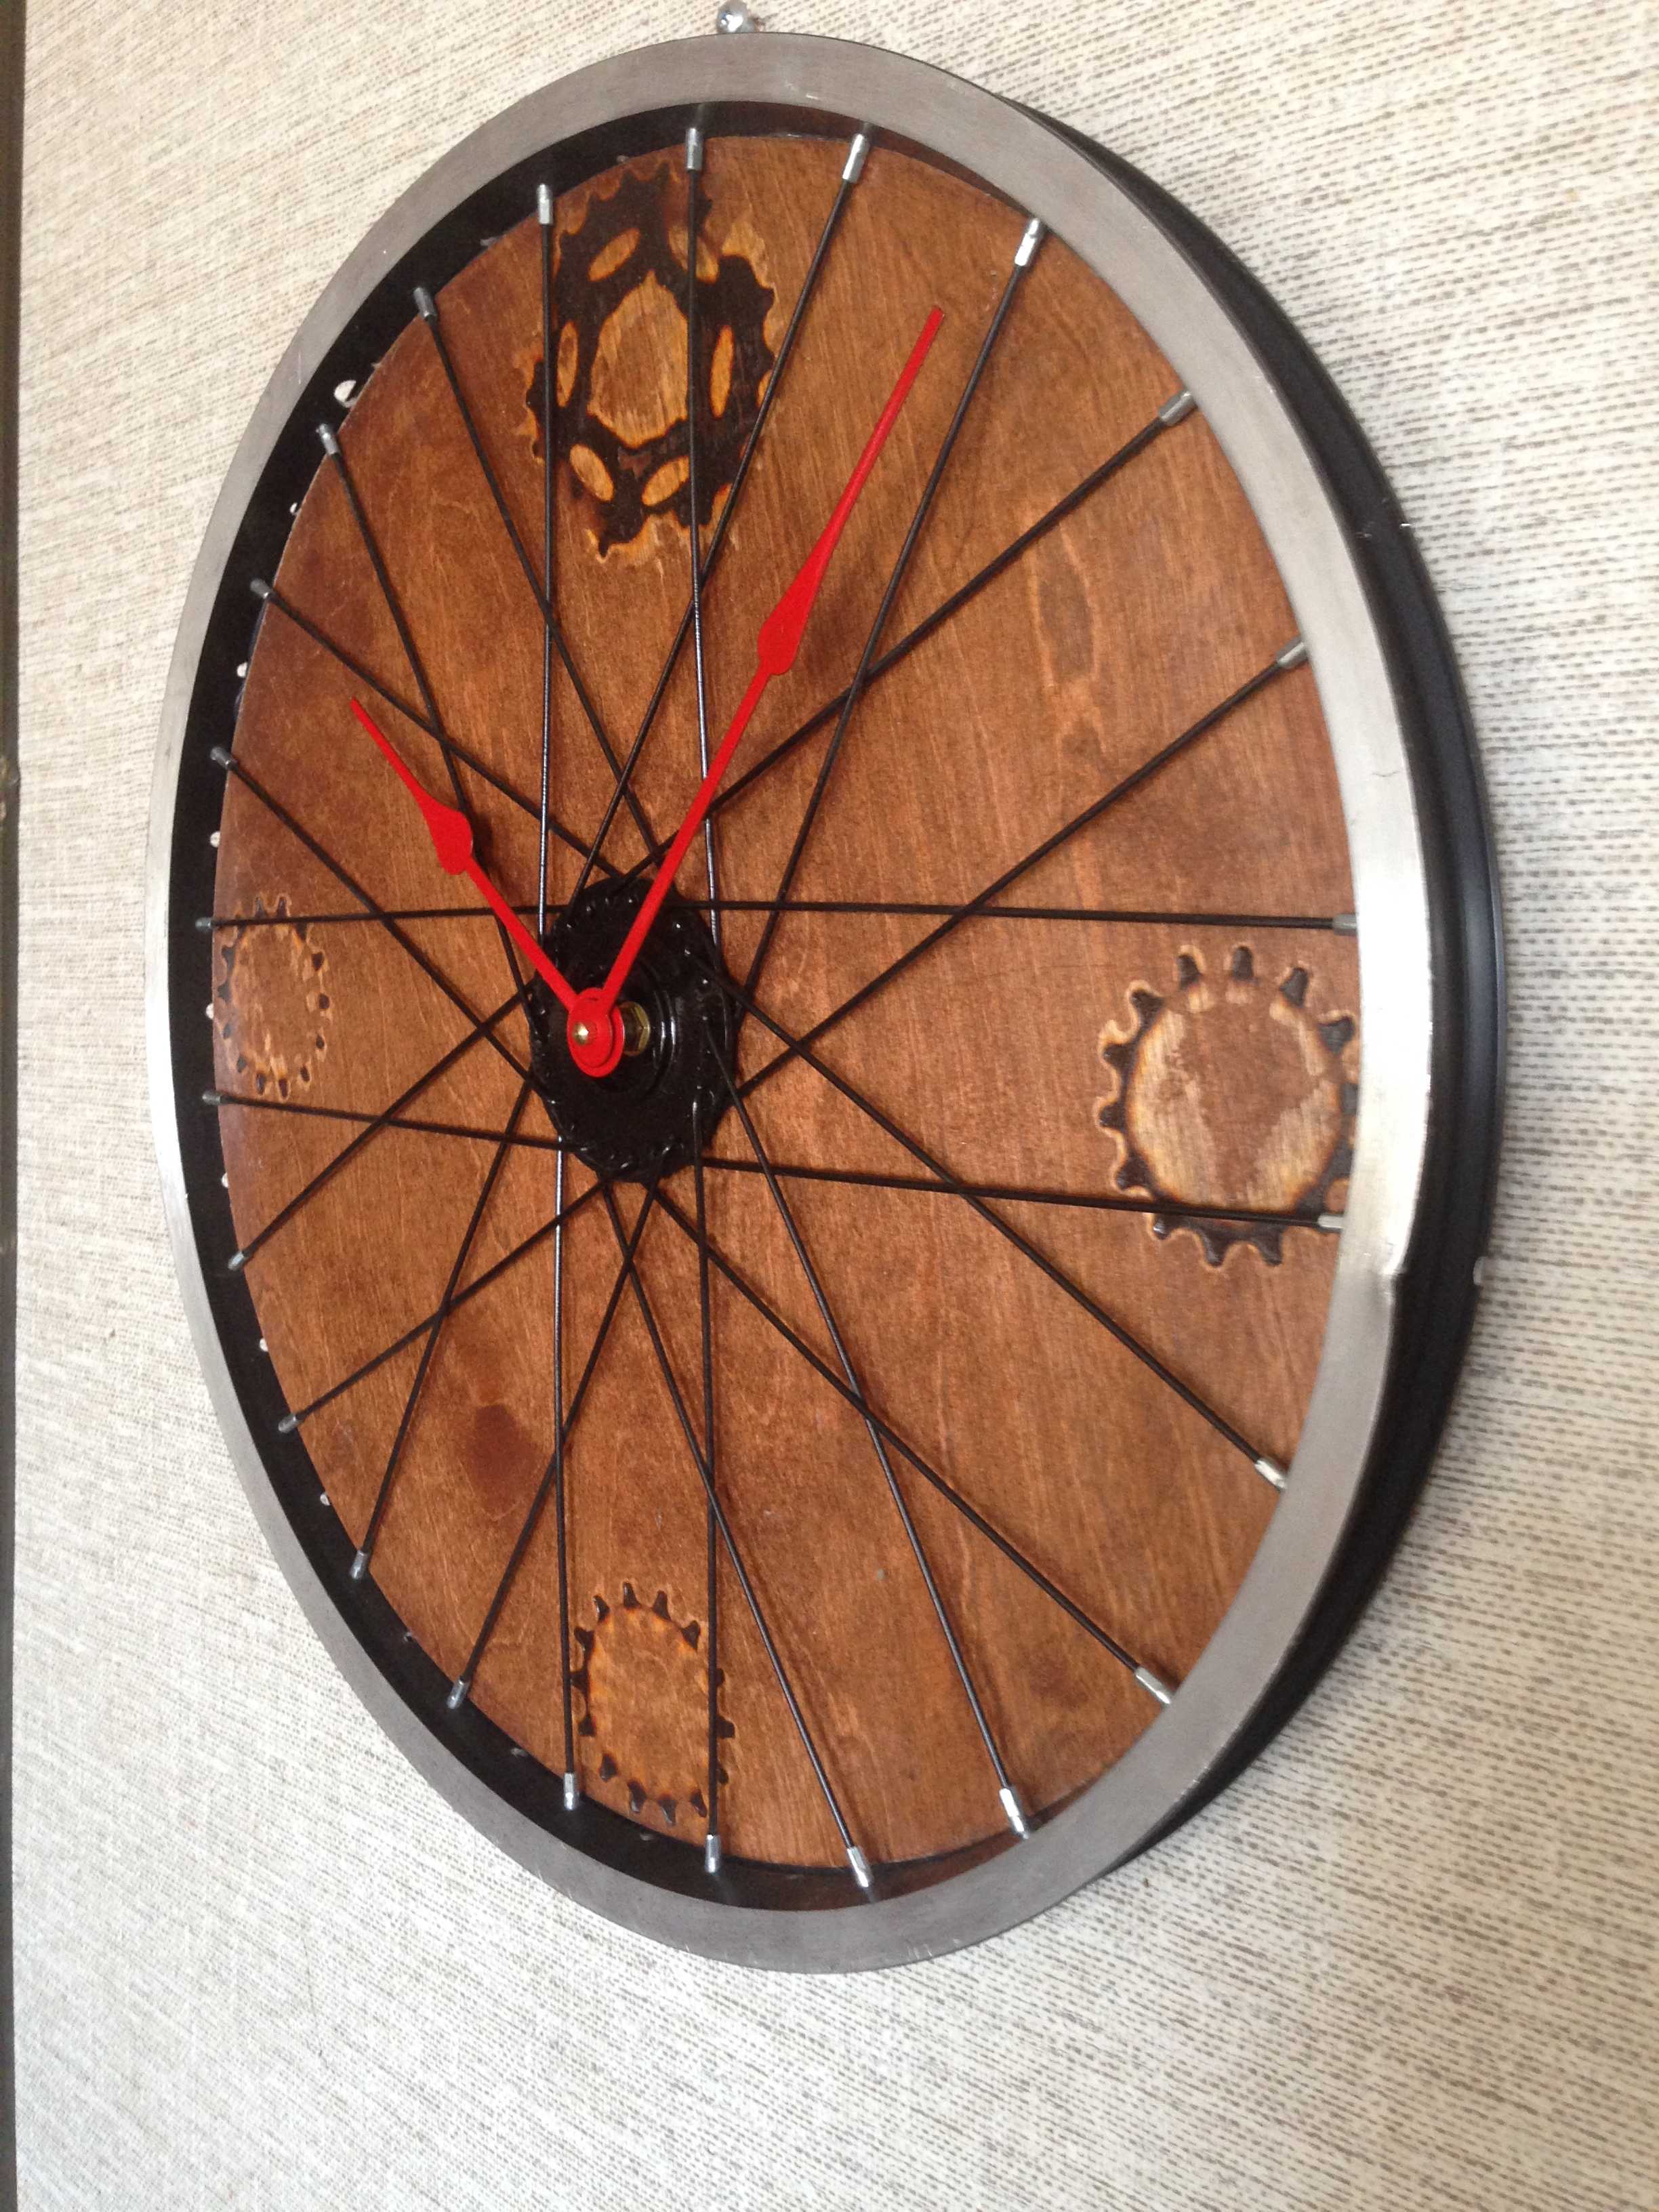 This classic looking recycled clock  mixes bicycle parts and Birch wood panel to make a elegant design.